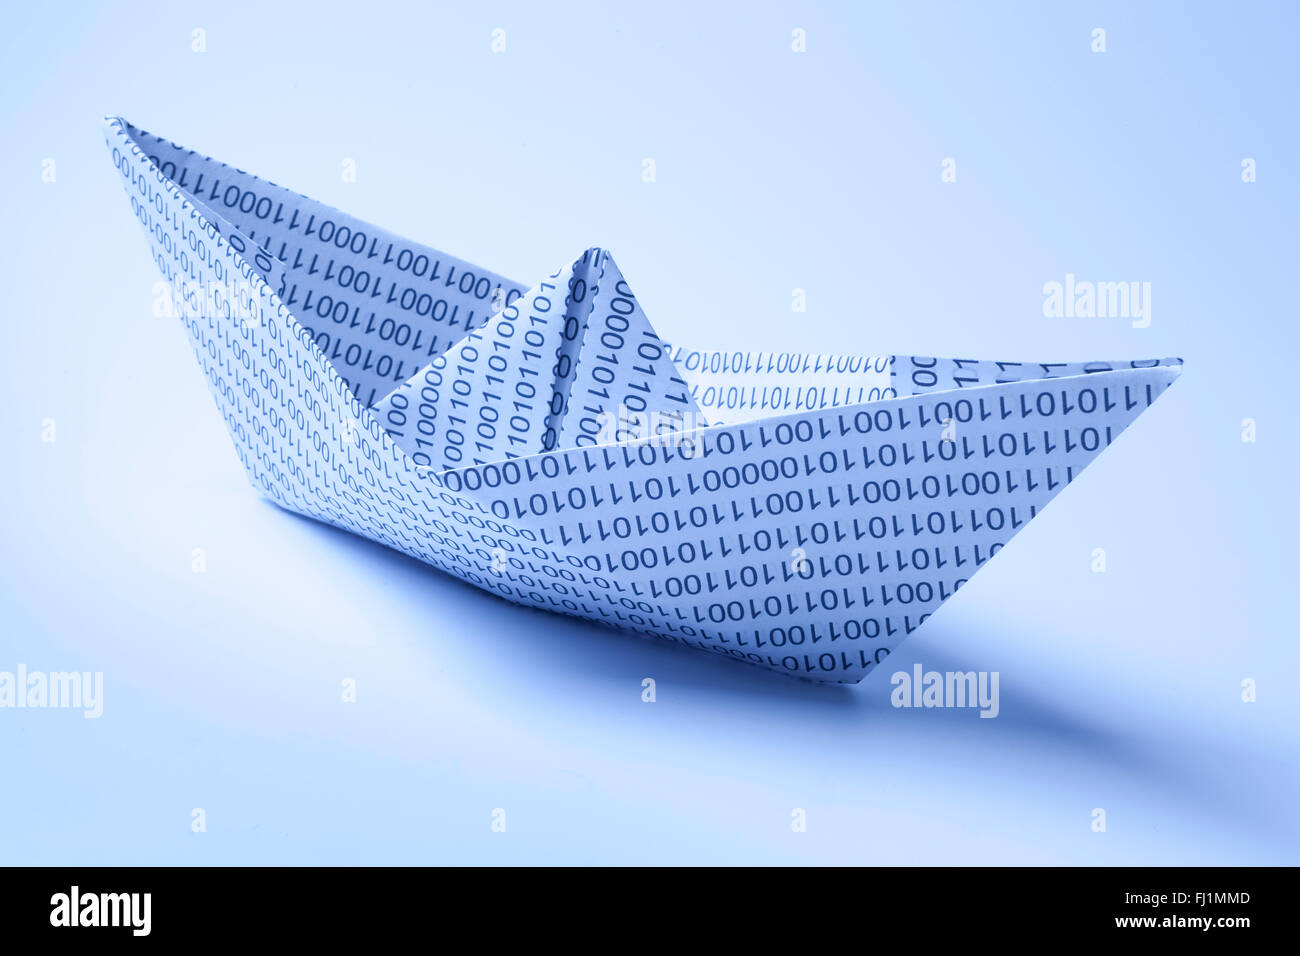 Paper ship with zero and ones - Stock Image